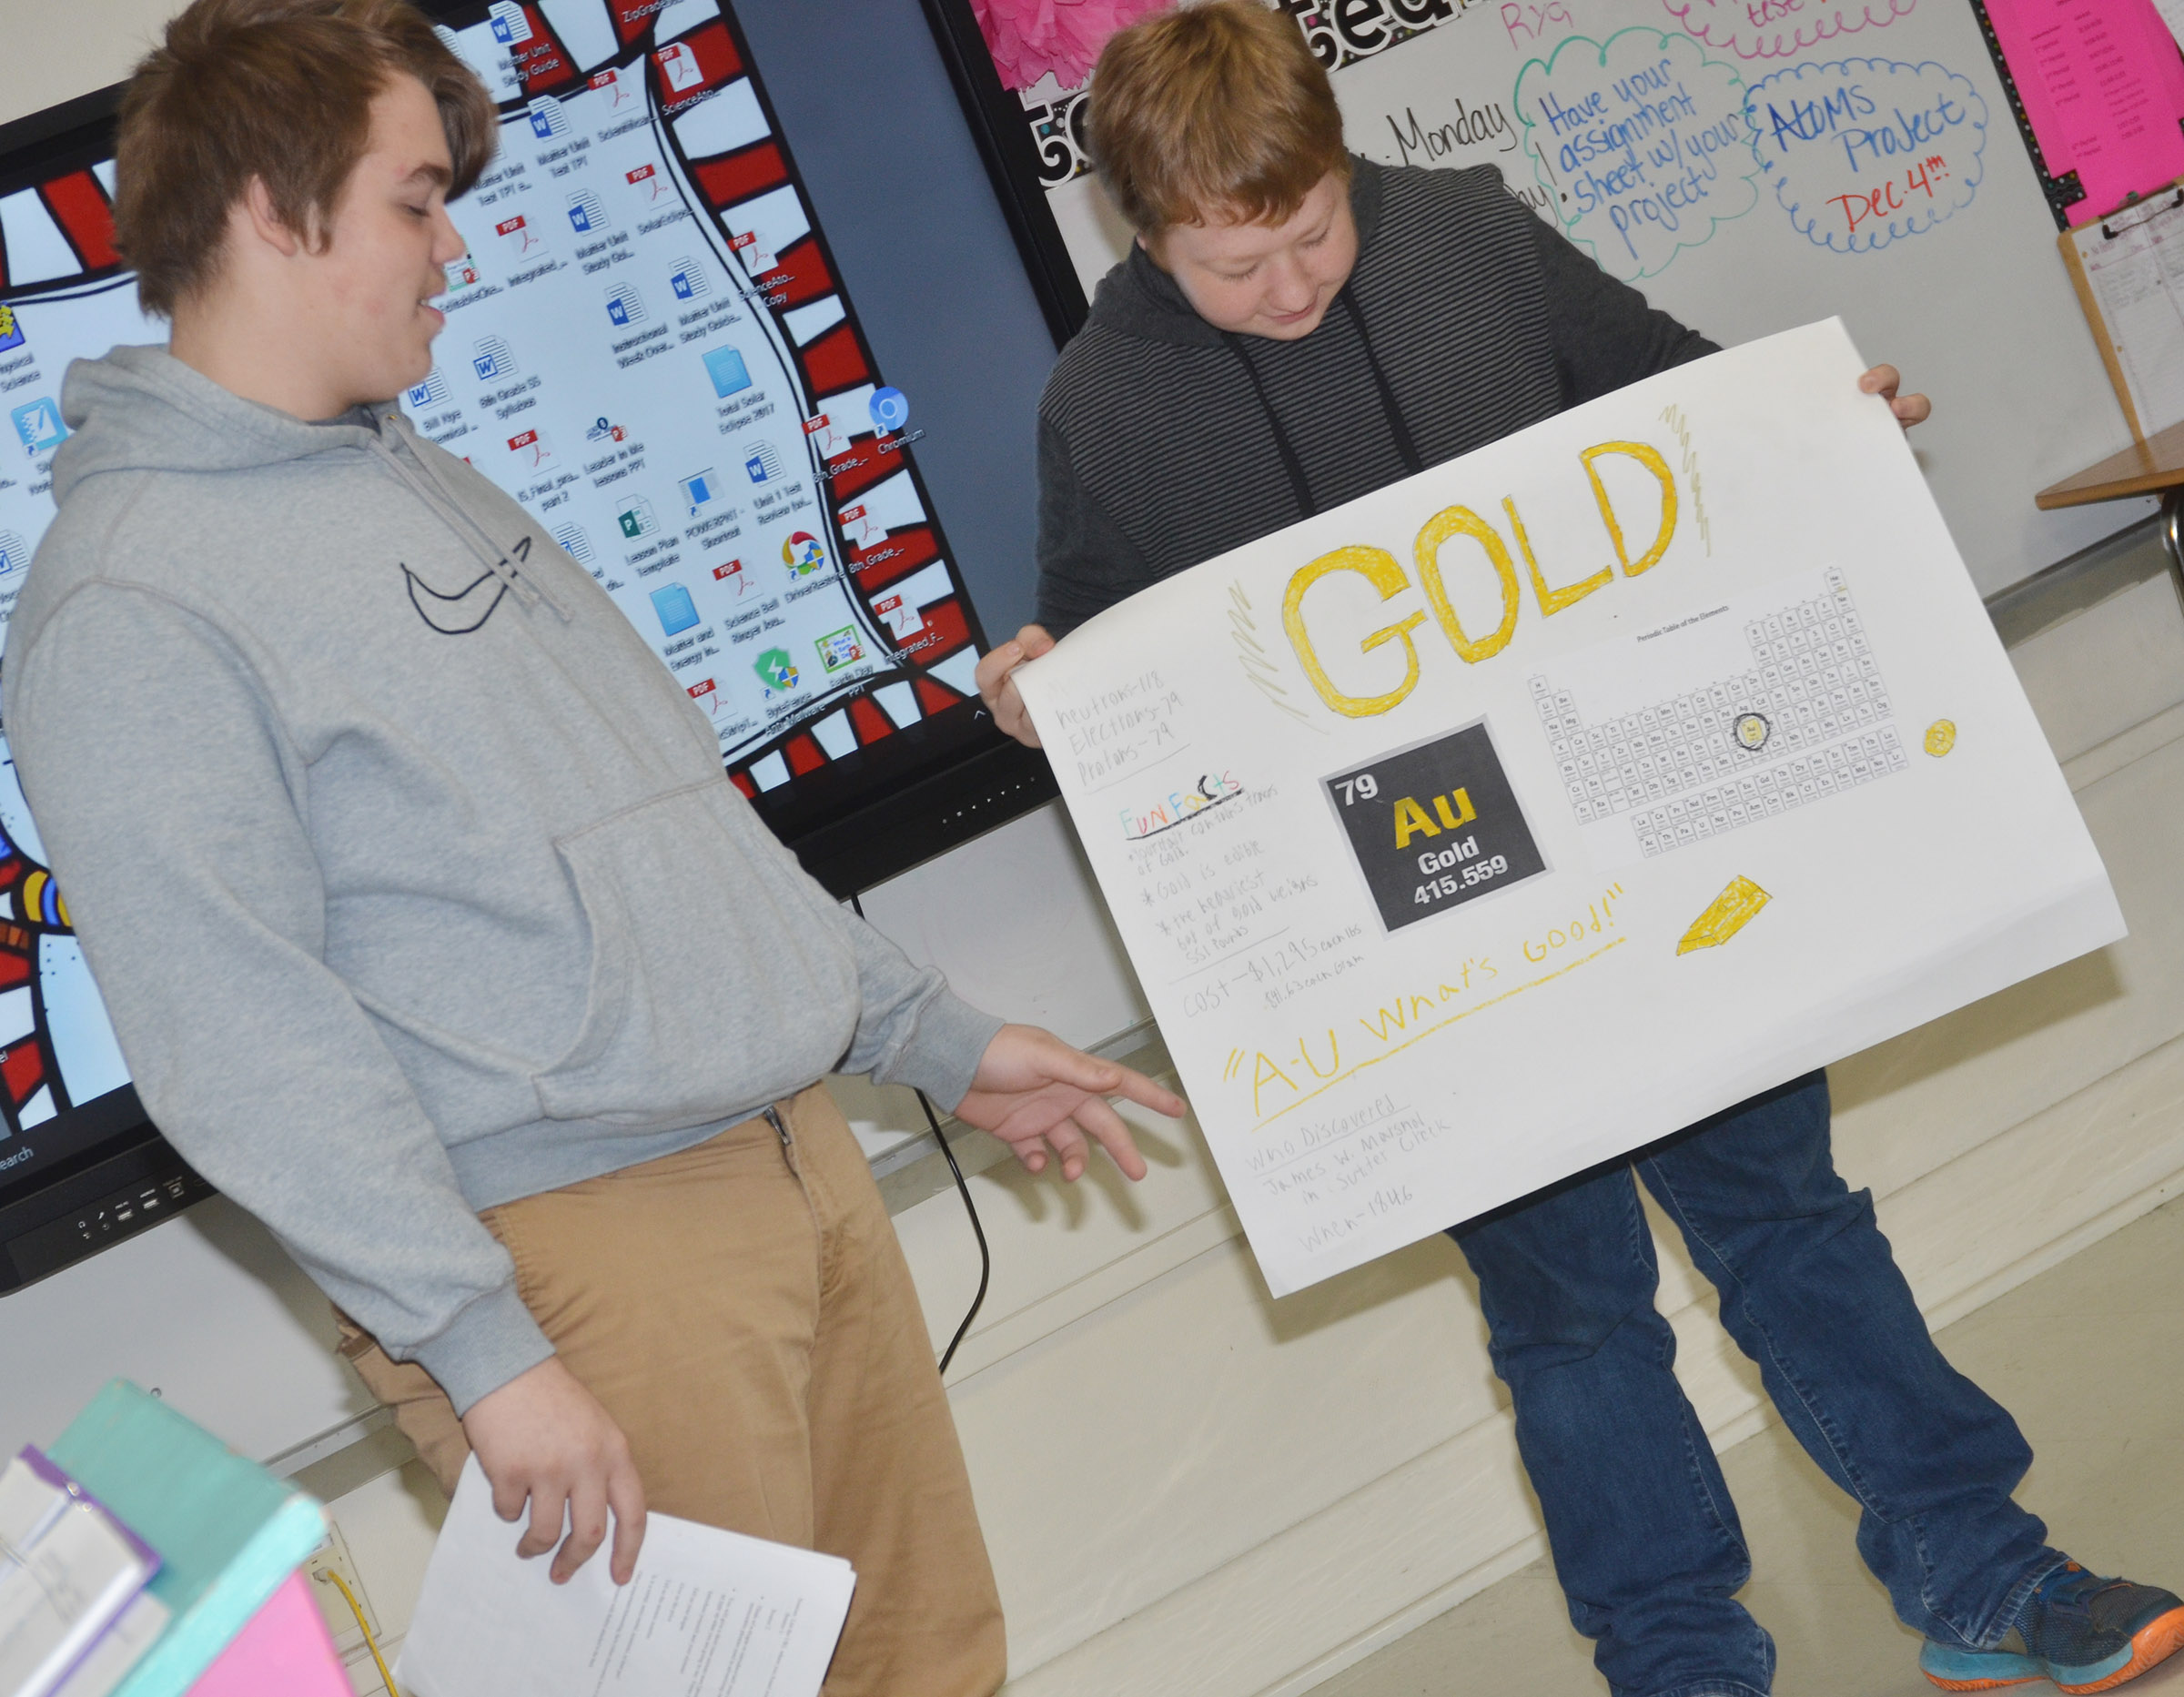 CMS eighth-grader Austin Jeffries, at left, talks about Gold as classmate Ryan Milburn holds his poster.